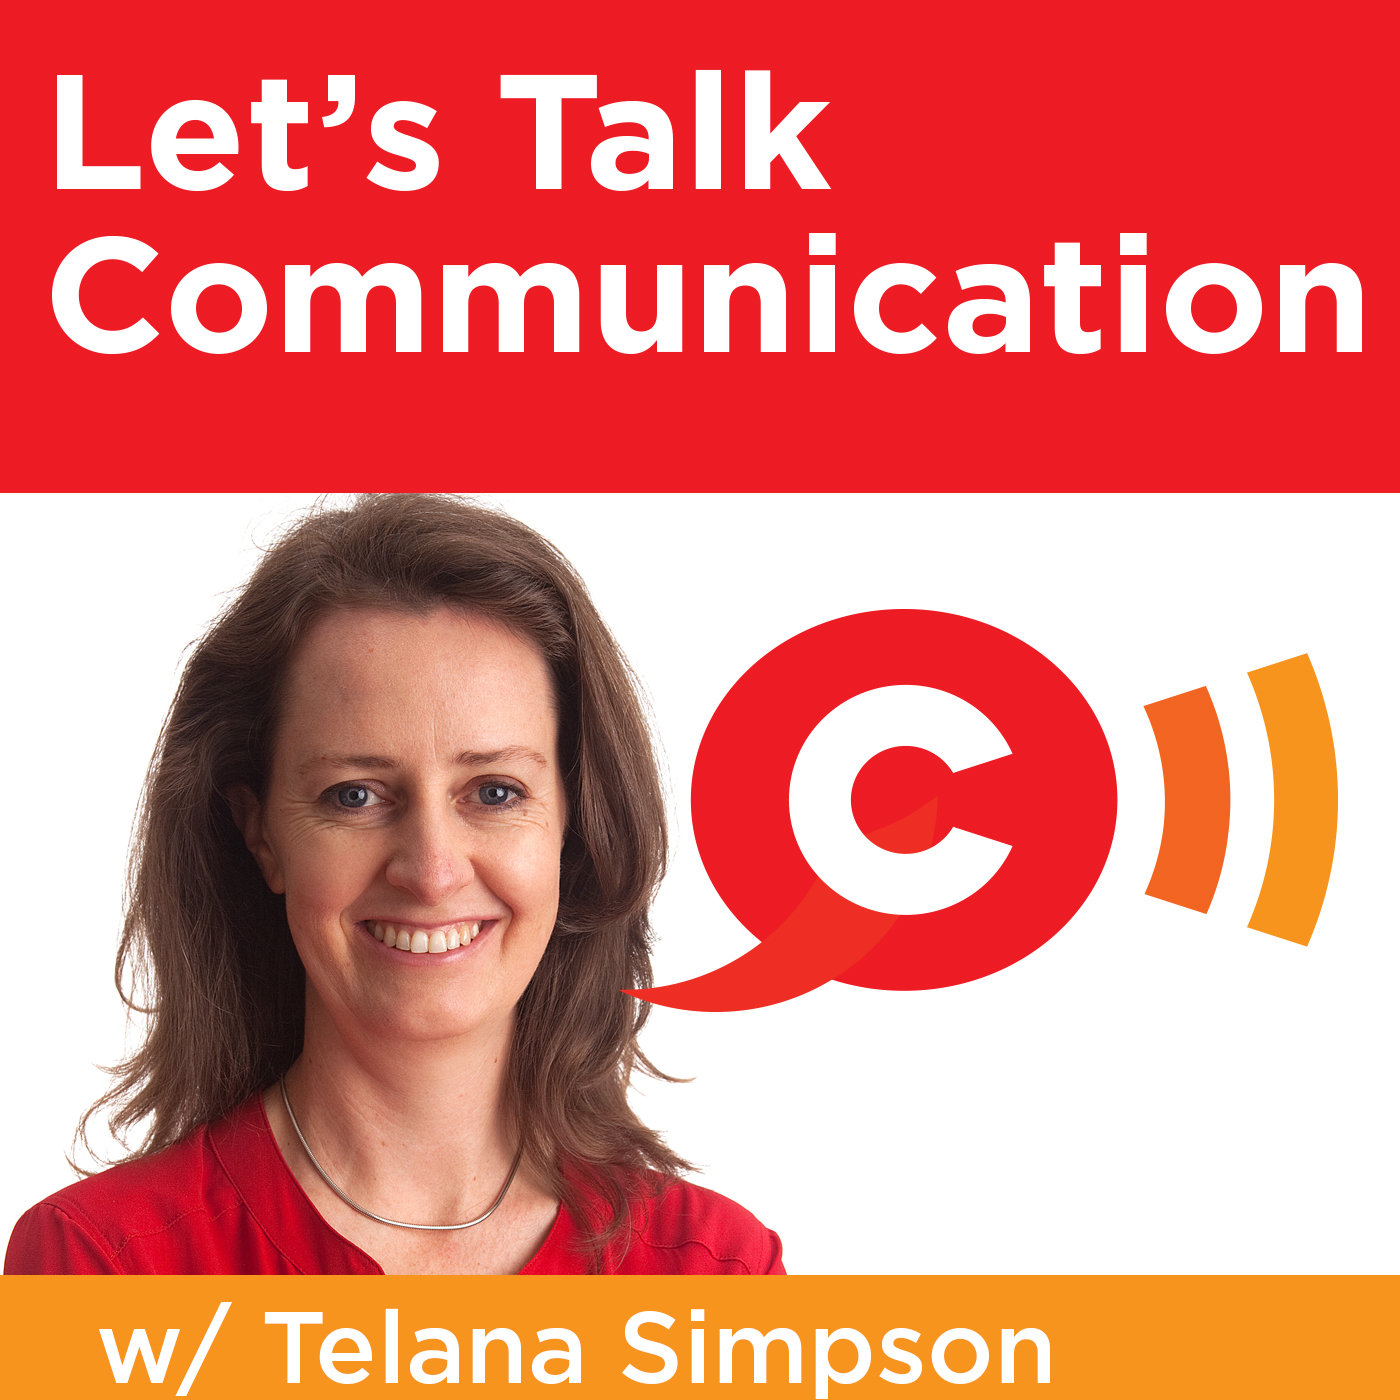 Let's Talk Communication with Telana Simpson   Conversations that Count